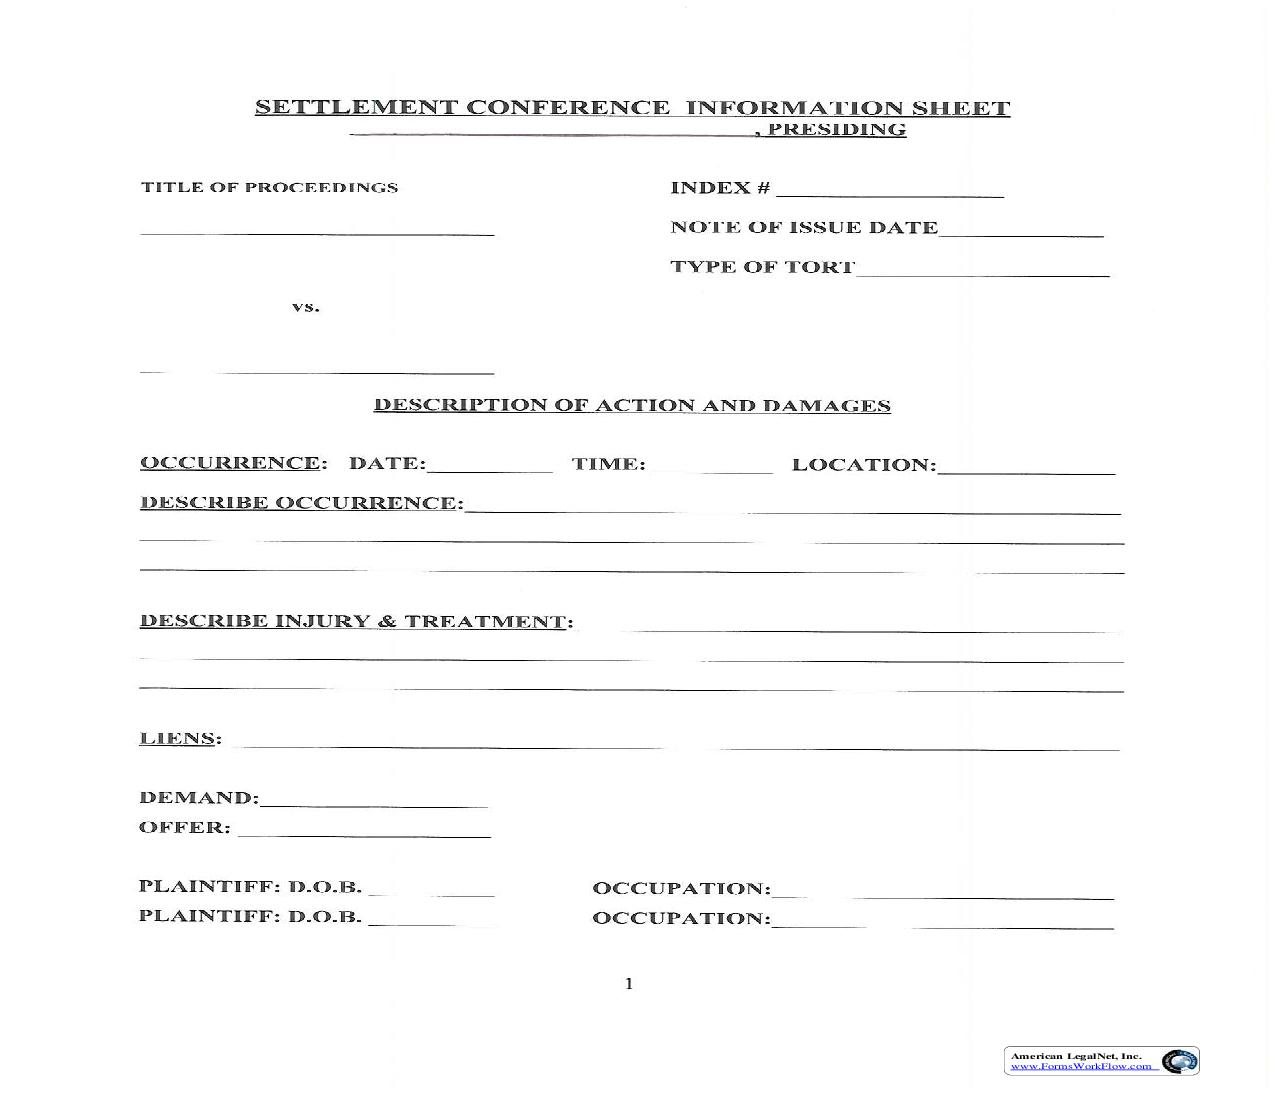 Settlement Conference Information Sheet | Pdf Fpdf Doc Docx | New York